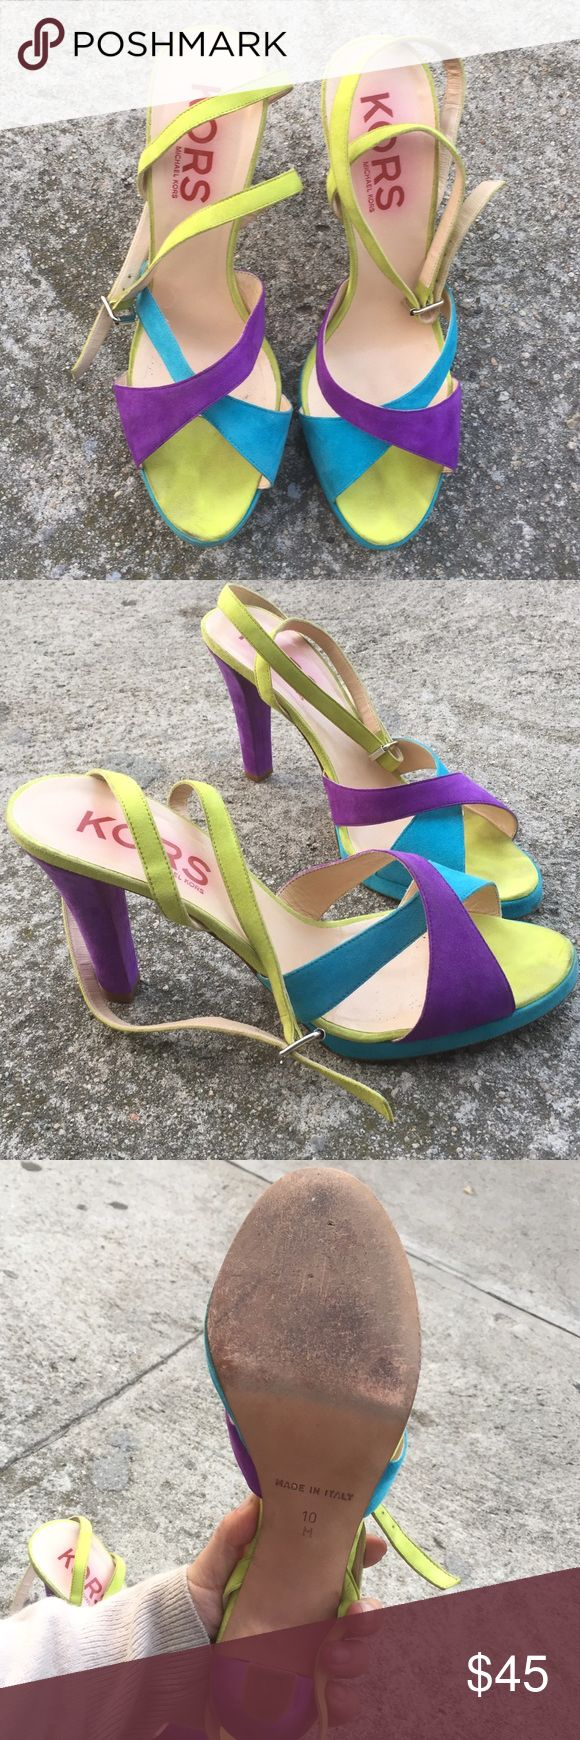 KORS Michael Kors suede purple strappy heels pumps Purple, blue, chartreuse green. Great condition. Made in Italy. See pics KORS Michael Kors Shoes Heels